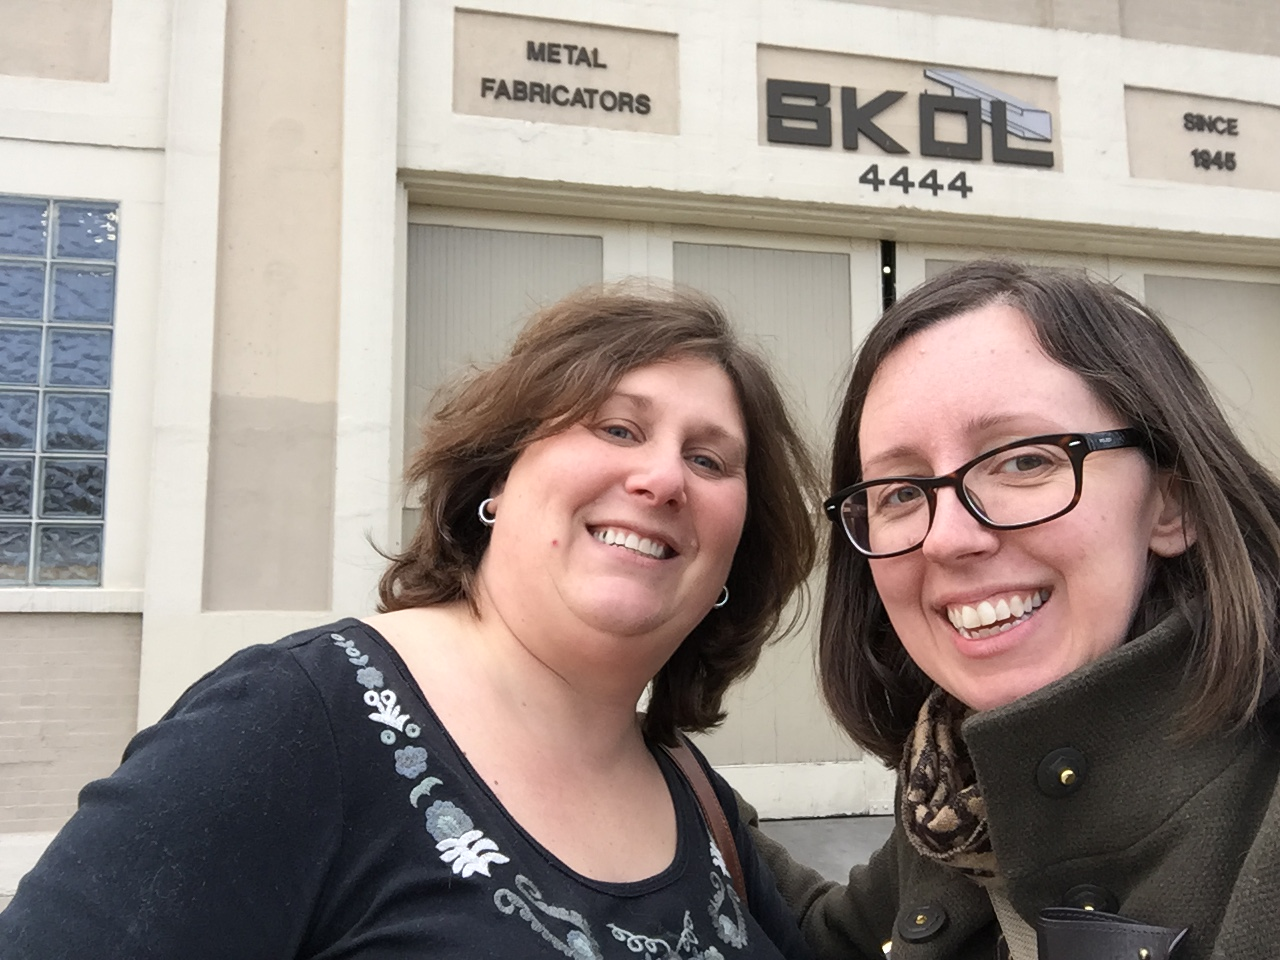 Gayle and Emily visiting Chicago's Skol Metal Fabricators in the Ravenswood Industrial Corridor